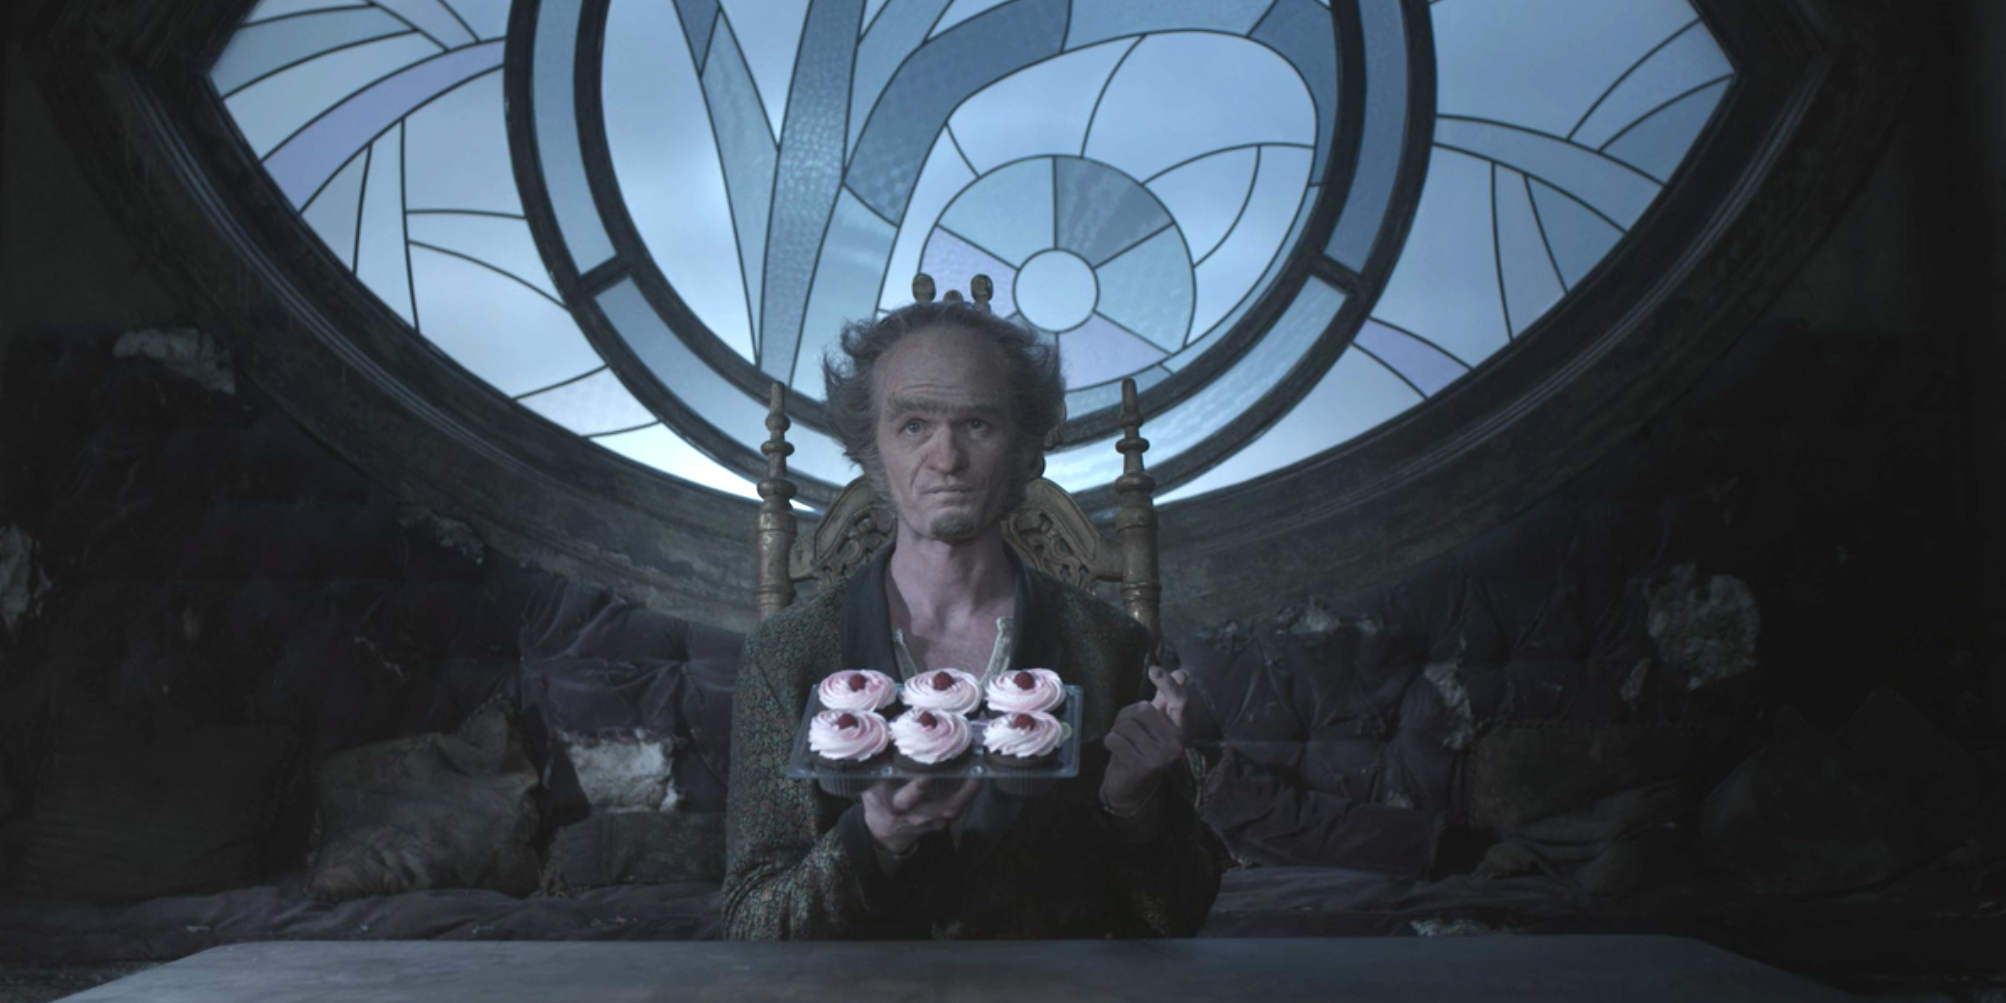 Neil Patrick Harris as Count Olaf in 'A Series of Unfortunate Events'